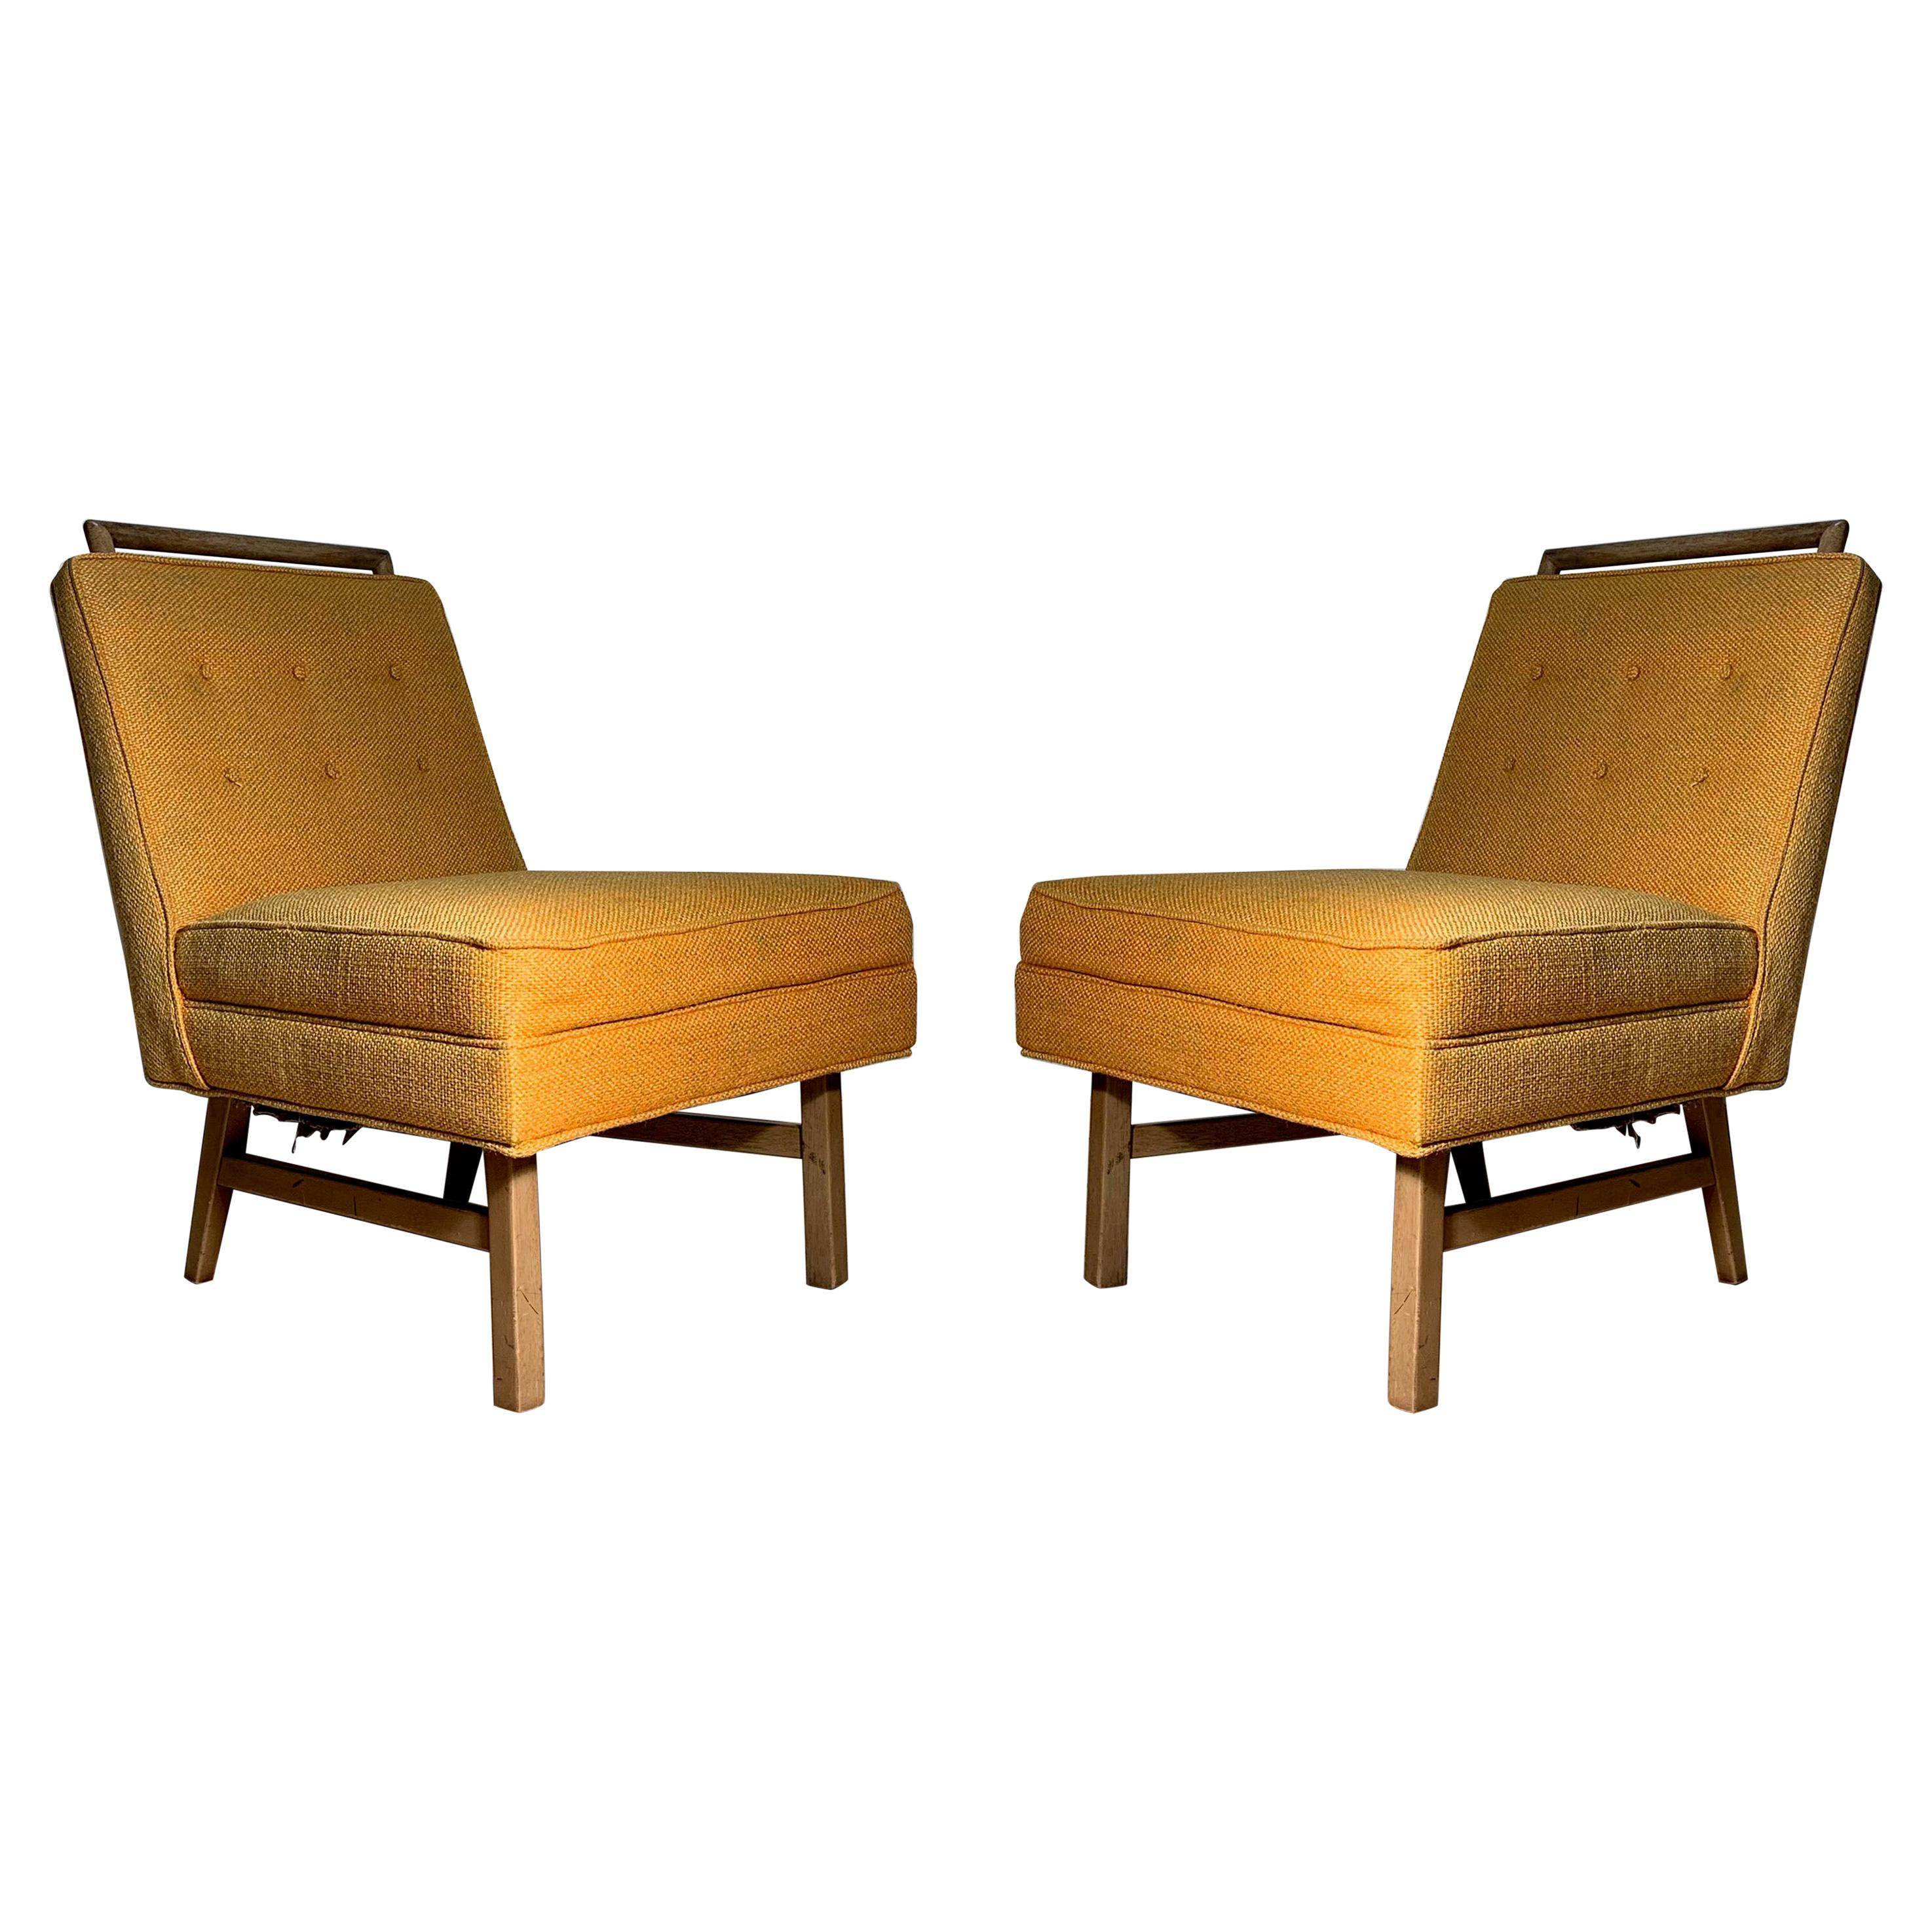 Pair of Mid-Century Modern Vintage Side Chairs